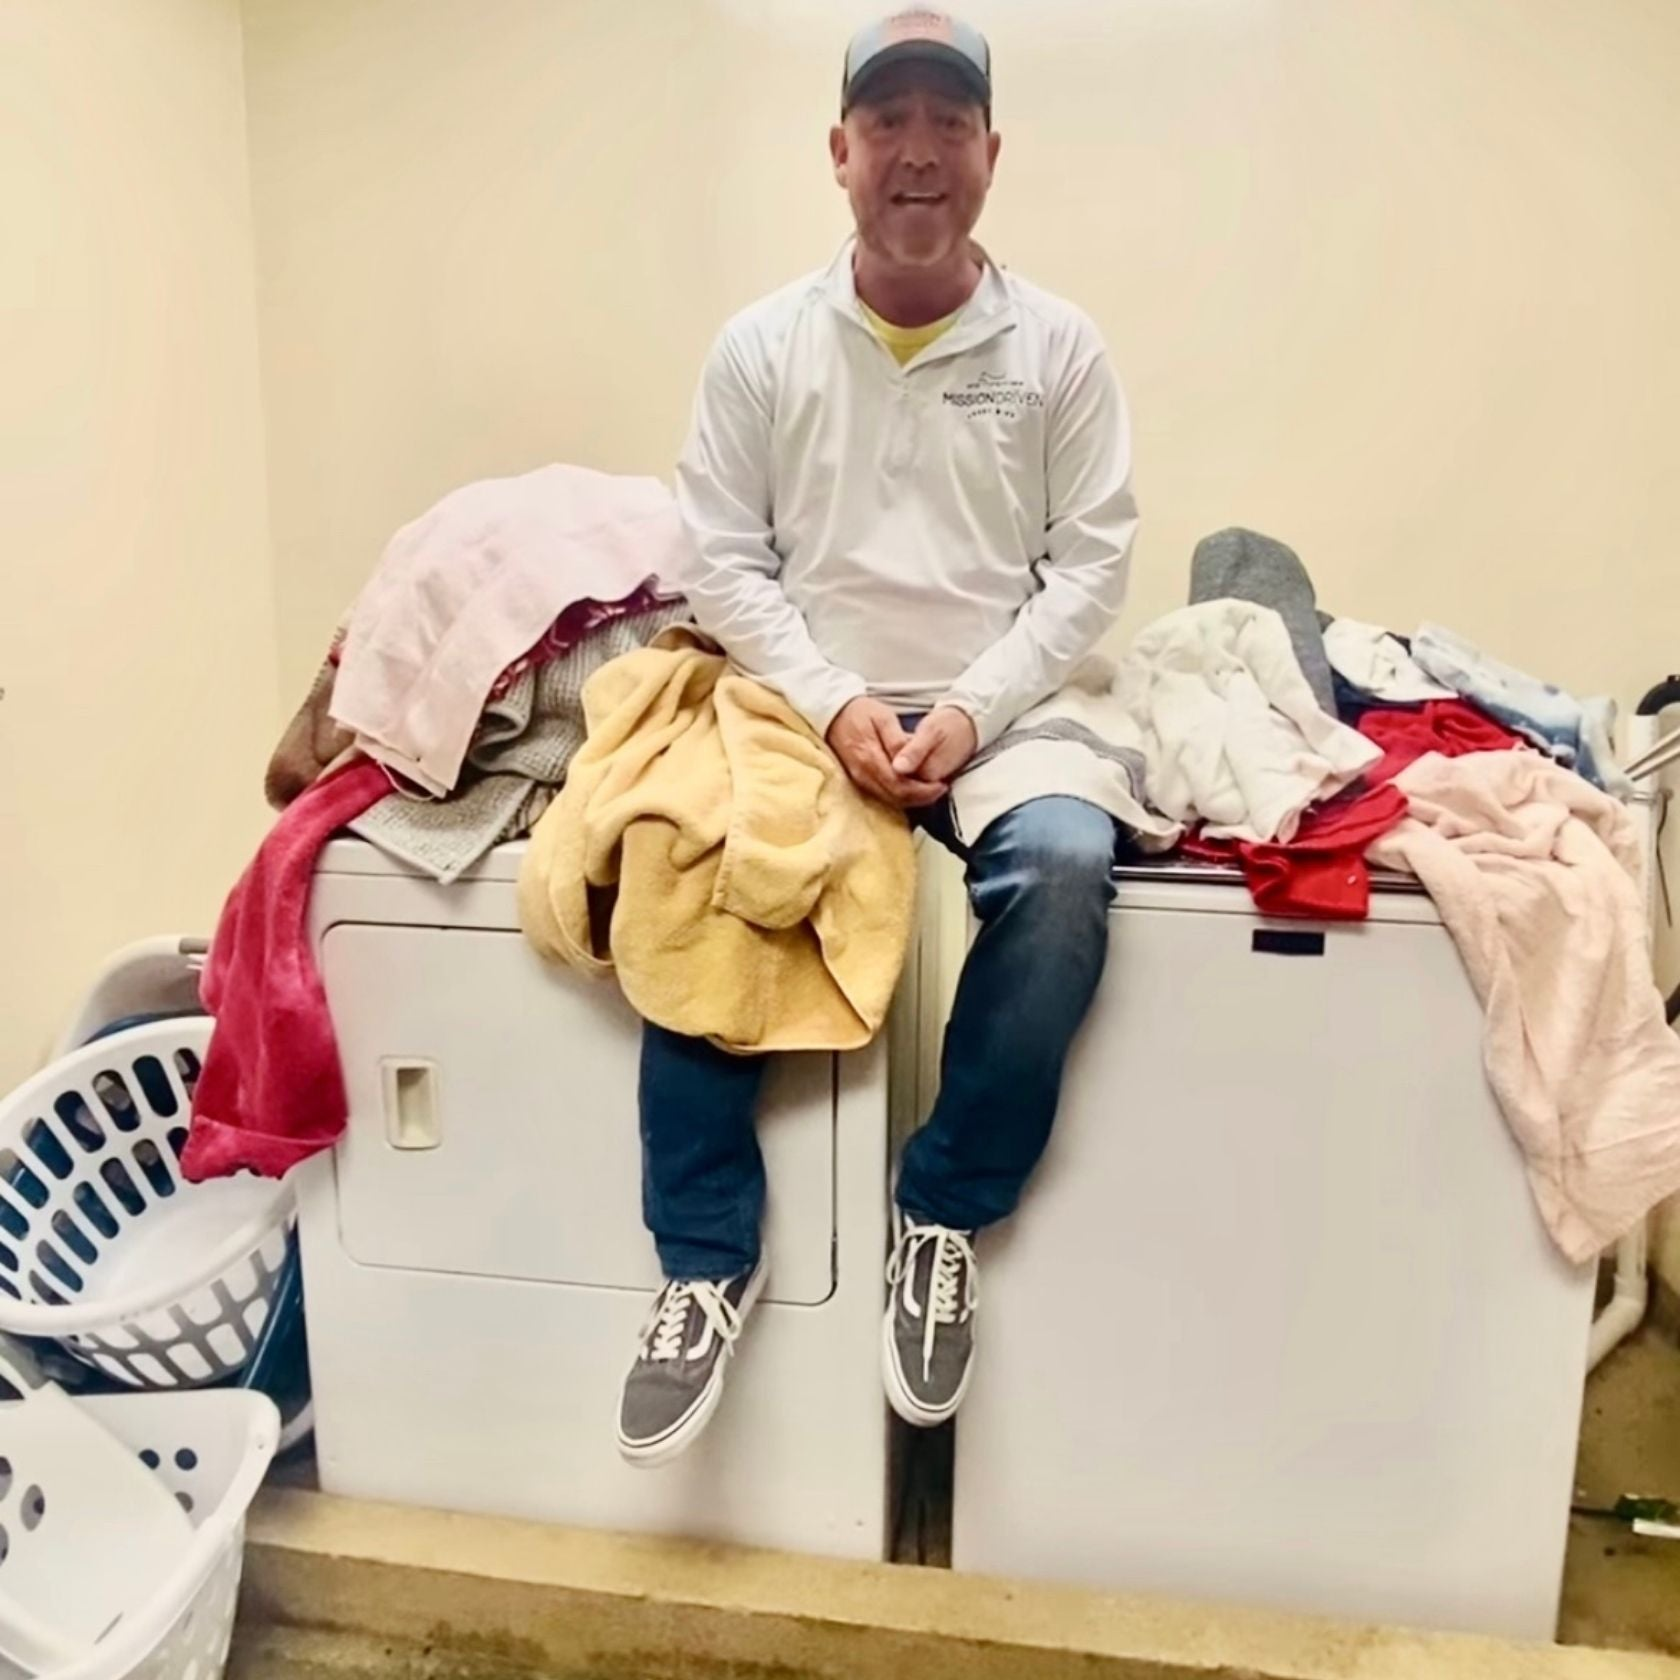 8000 Raised in 4 Days for Washer & Dryer